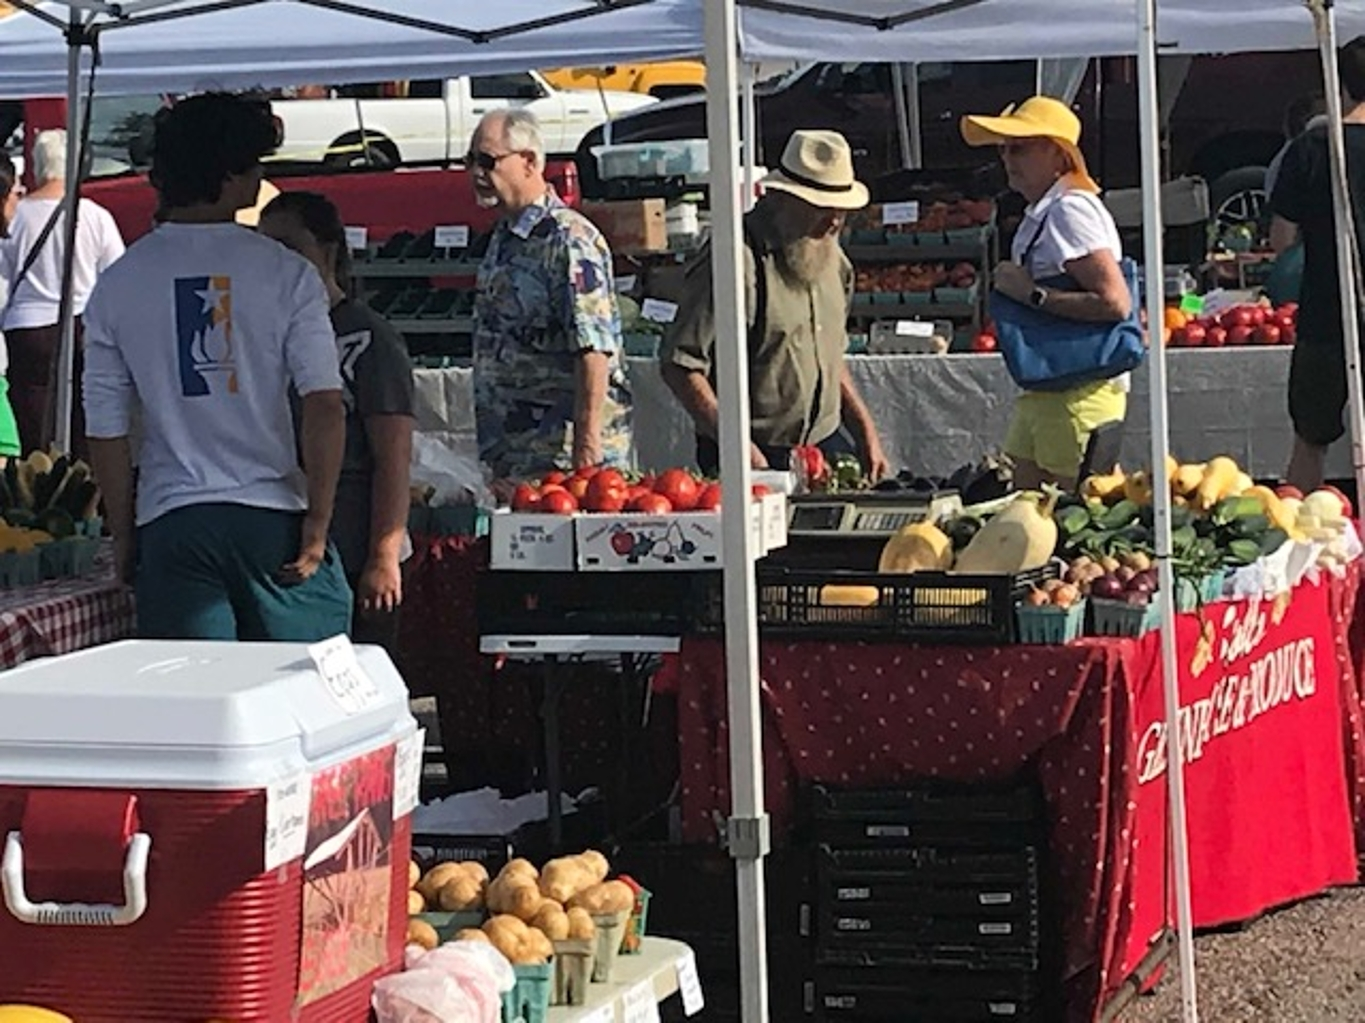 Vendors at the Bloomingfoods Market